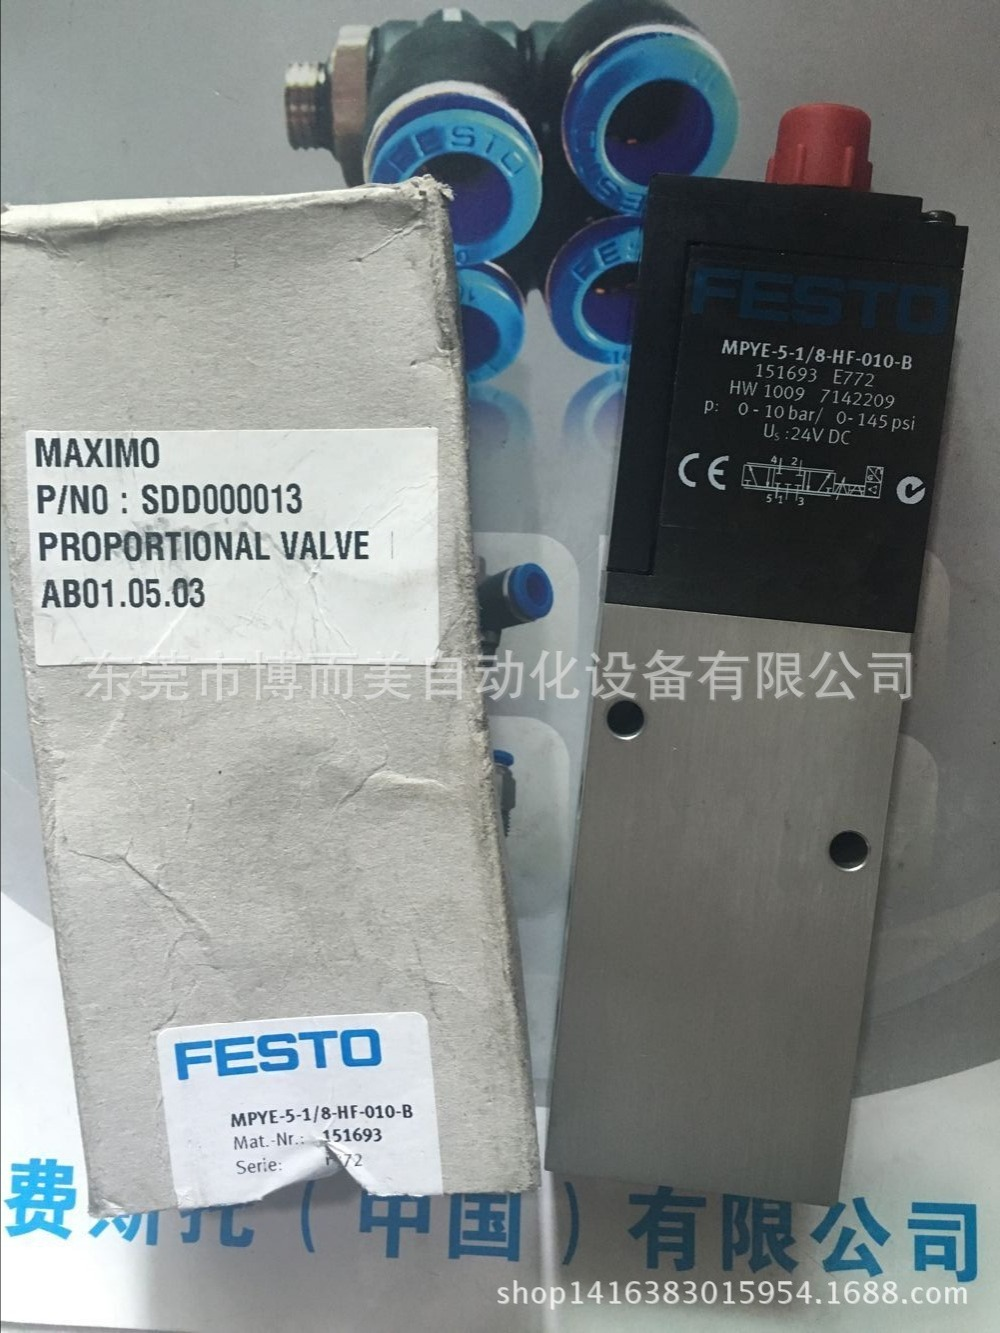 все цены на The new original FESTO proportional valve MPYE-5-1/8HF-010-B 151693 онлайн